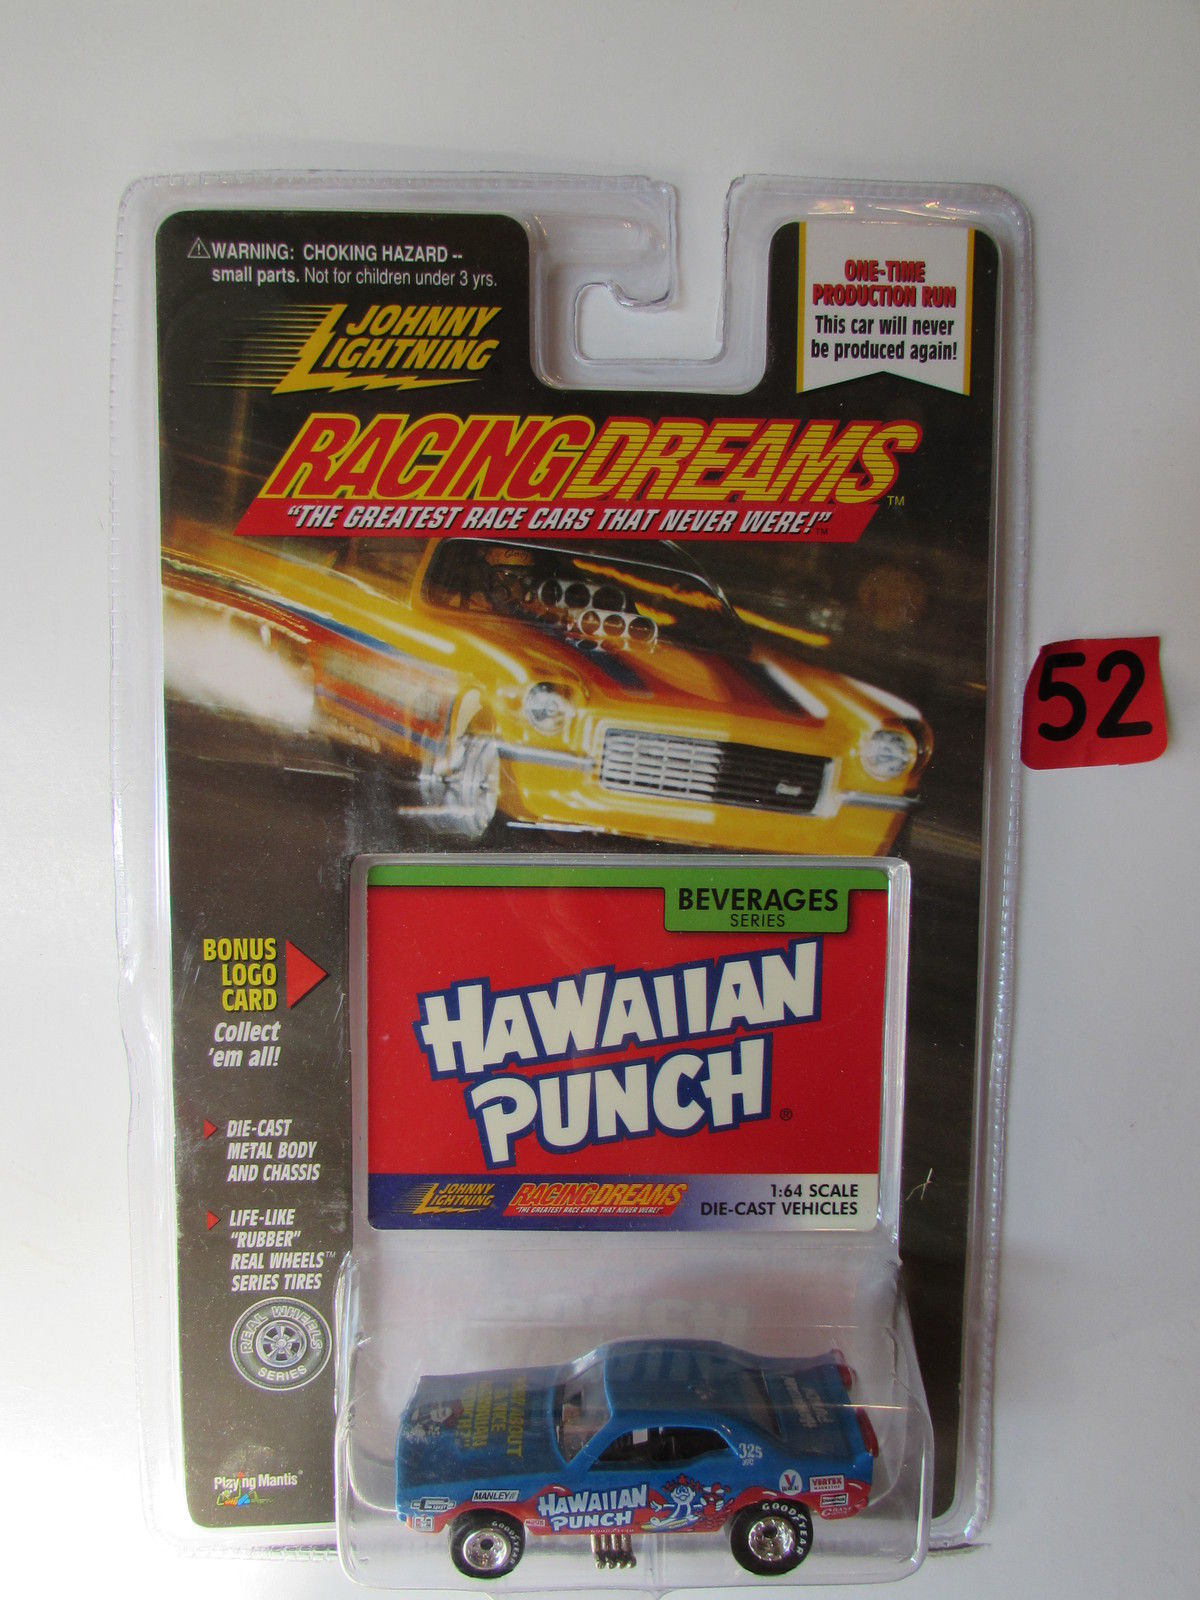 JOHNNY LIGHTNING RACINGDREAMS HAWAIIAN PUNCH BEVERAGES DIE-CAST VEHICLES E+